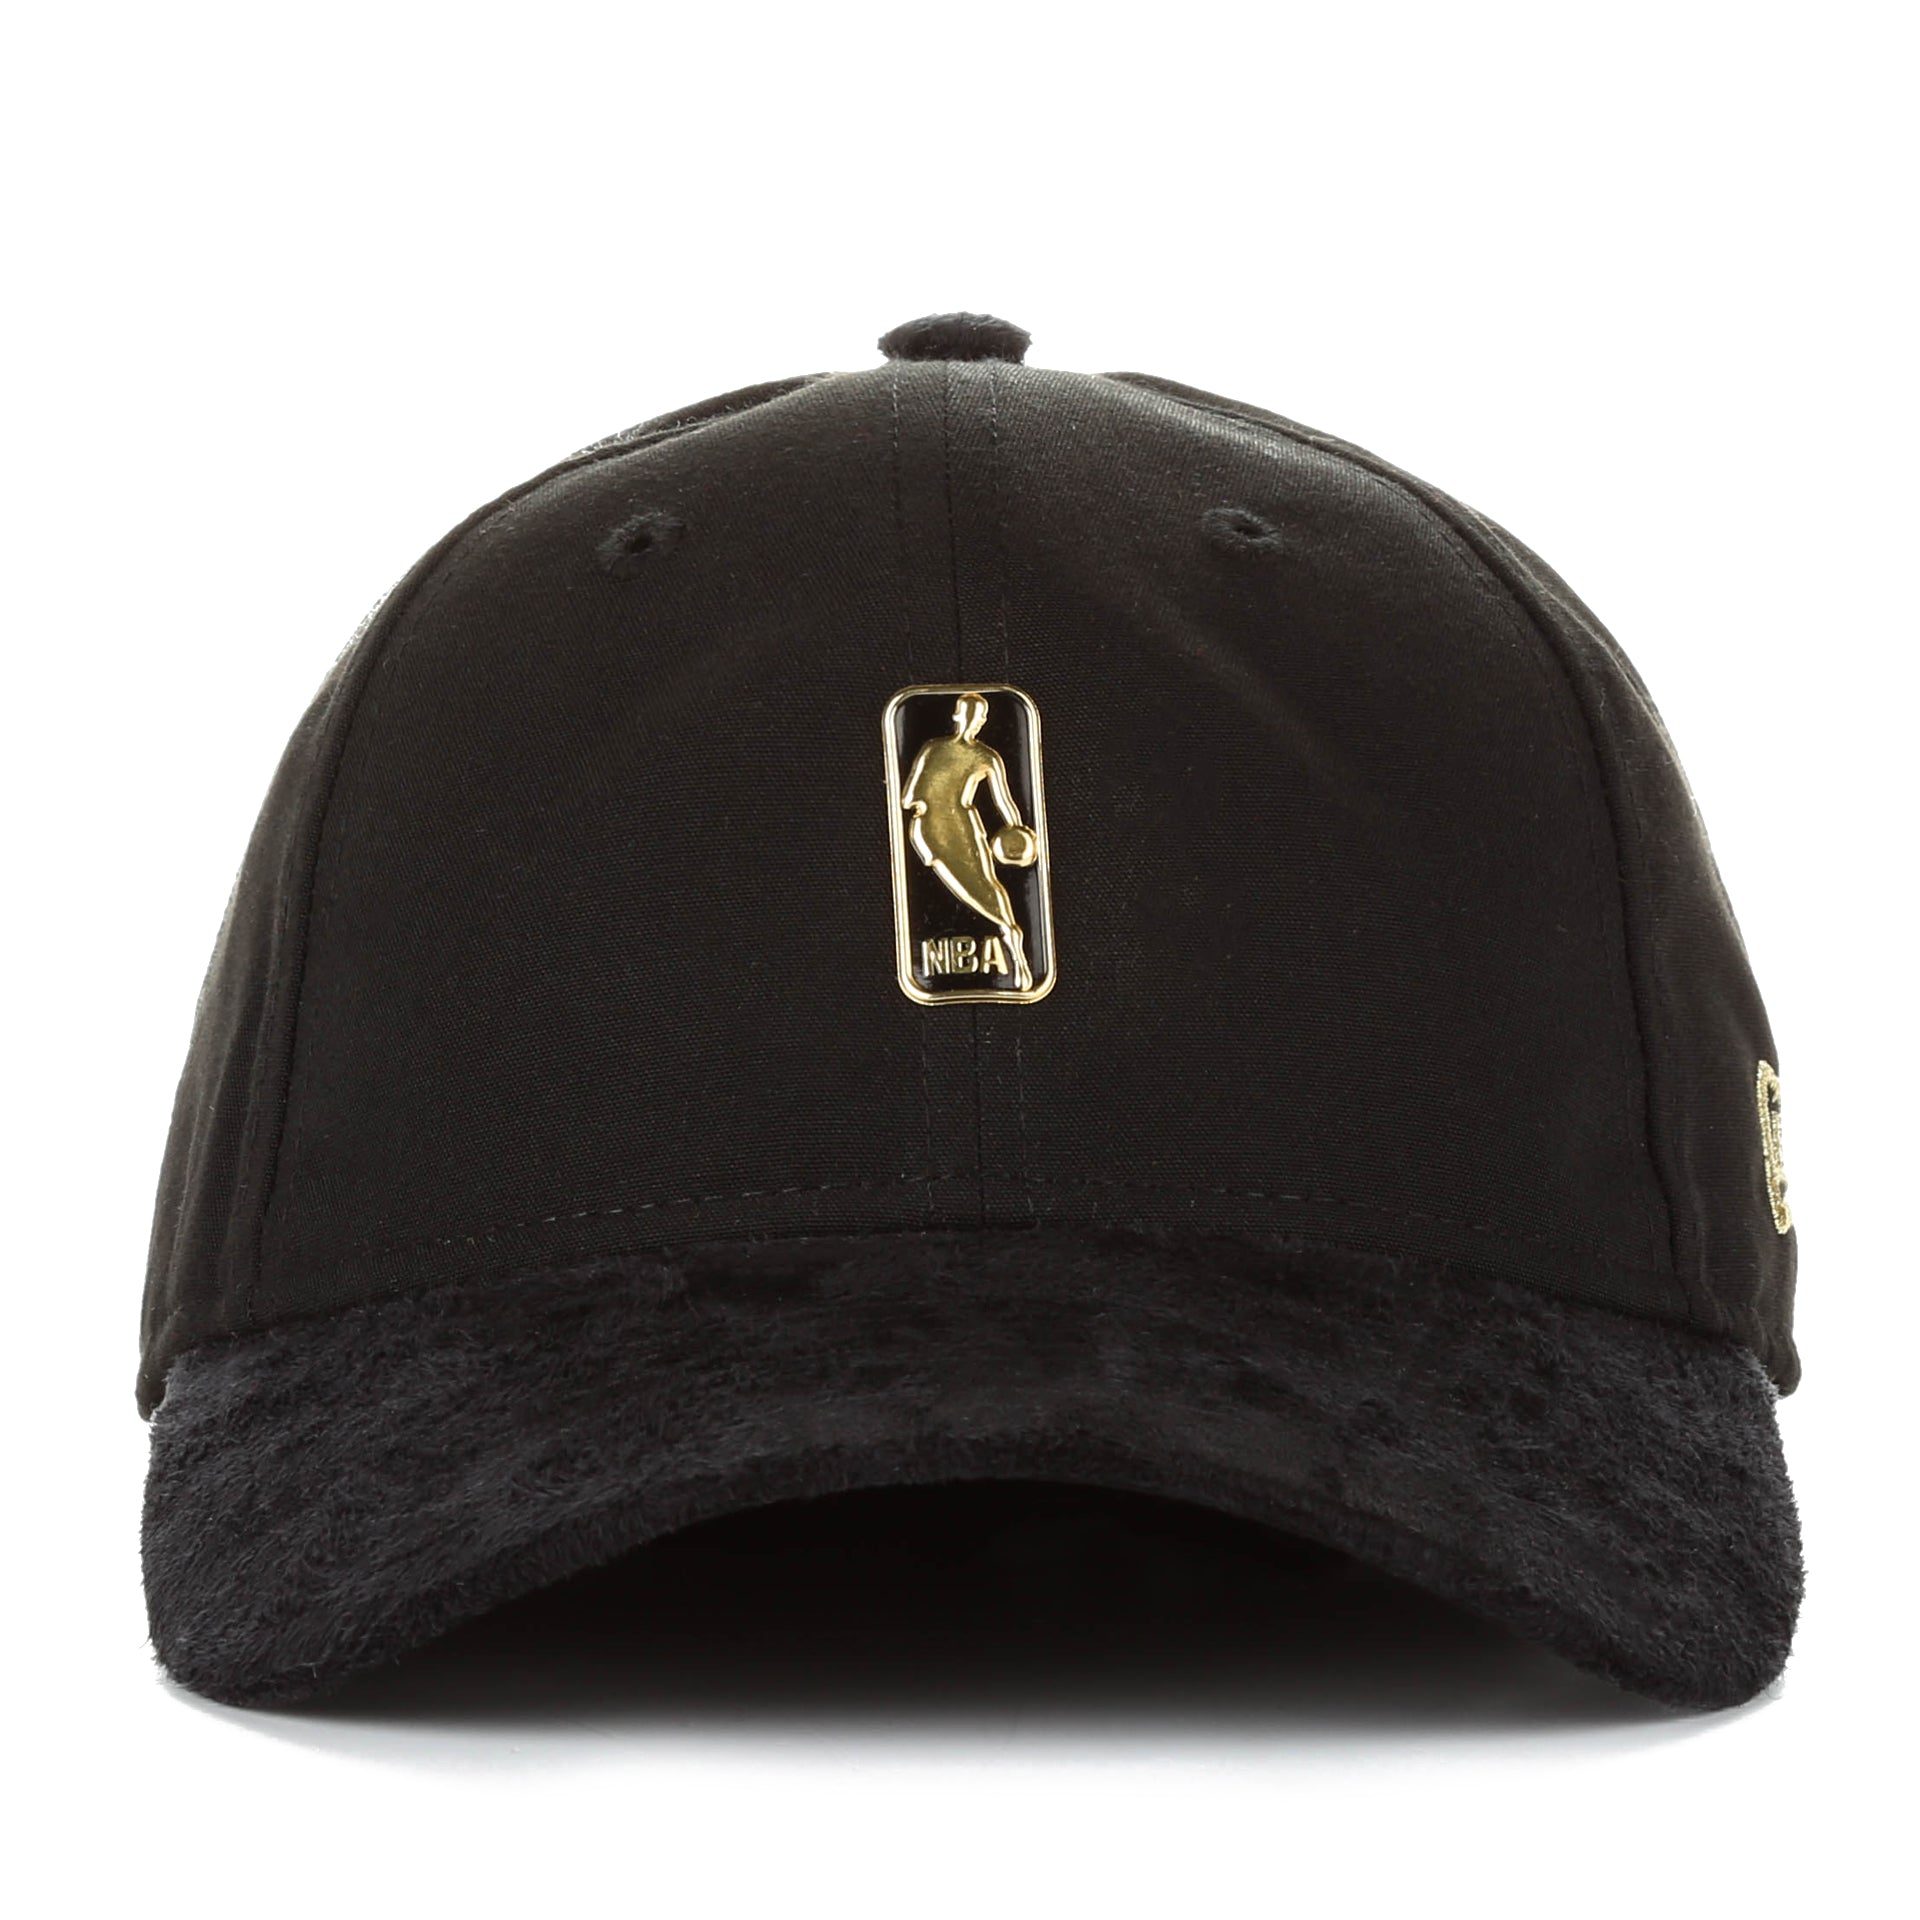 New Era 9Twenty NBA On Court Cap - NBA Logo Black - New Star aa2e683c193